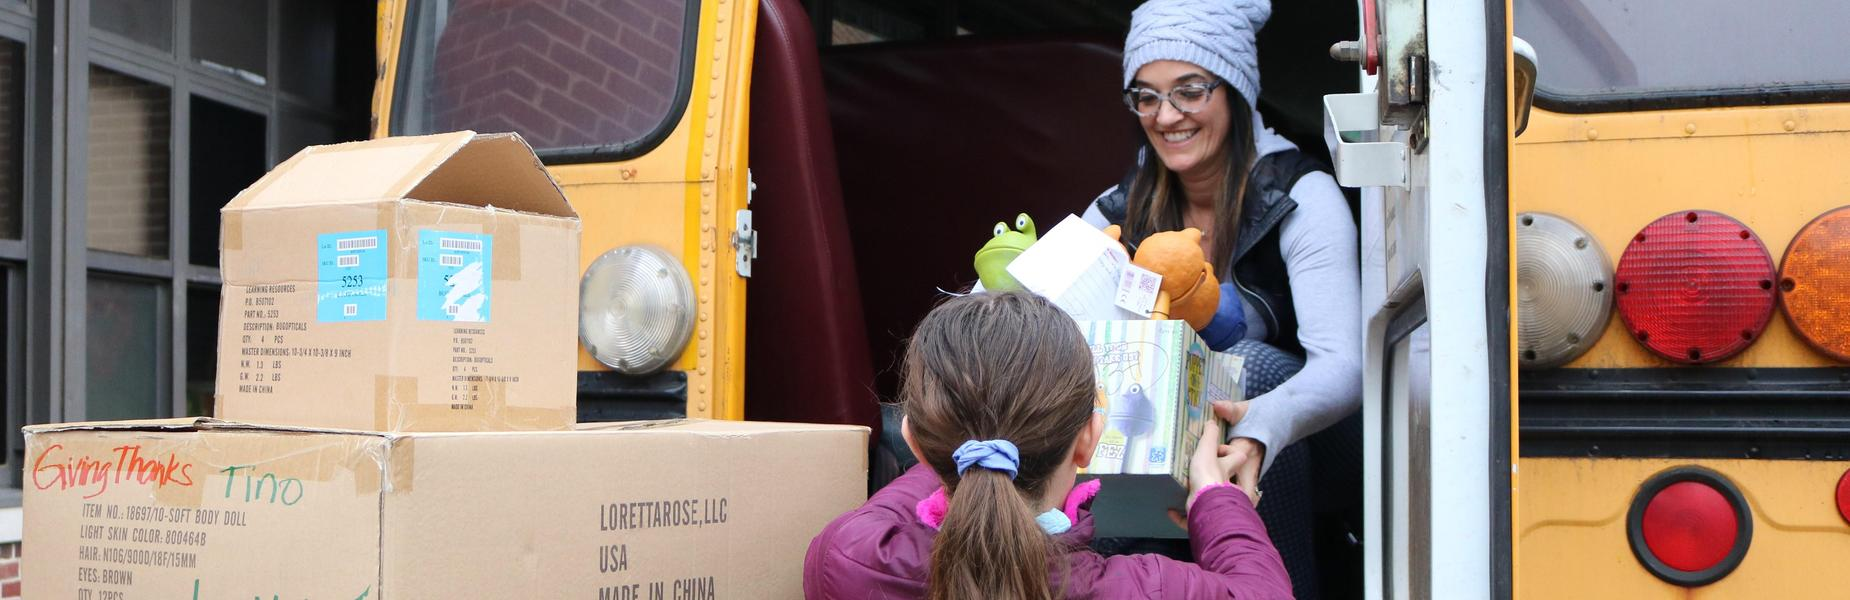 Photo of Franklin student handing box of toys to staffer on bus.